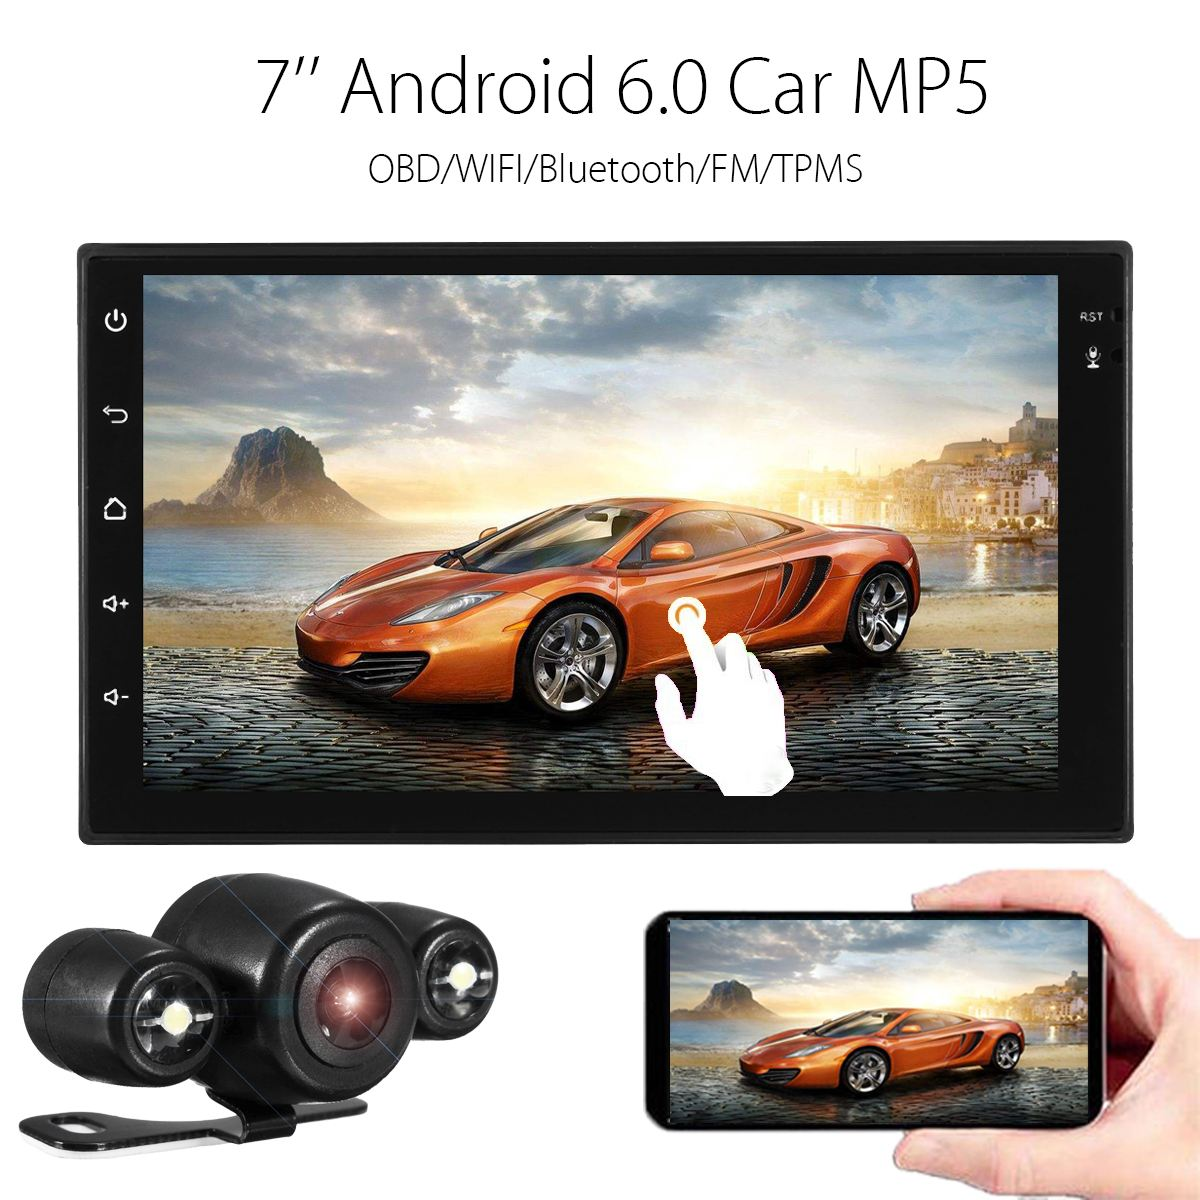 KROAK Android 6 0 1G 16G 7 HD 2D Car MP5 Player OBD WIFI Bluetooth 4